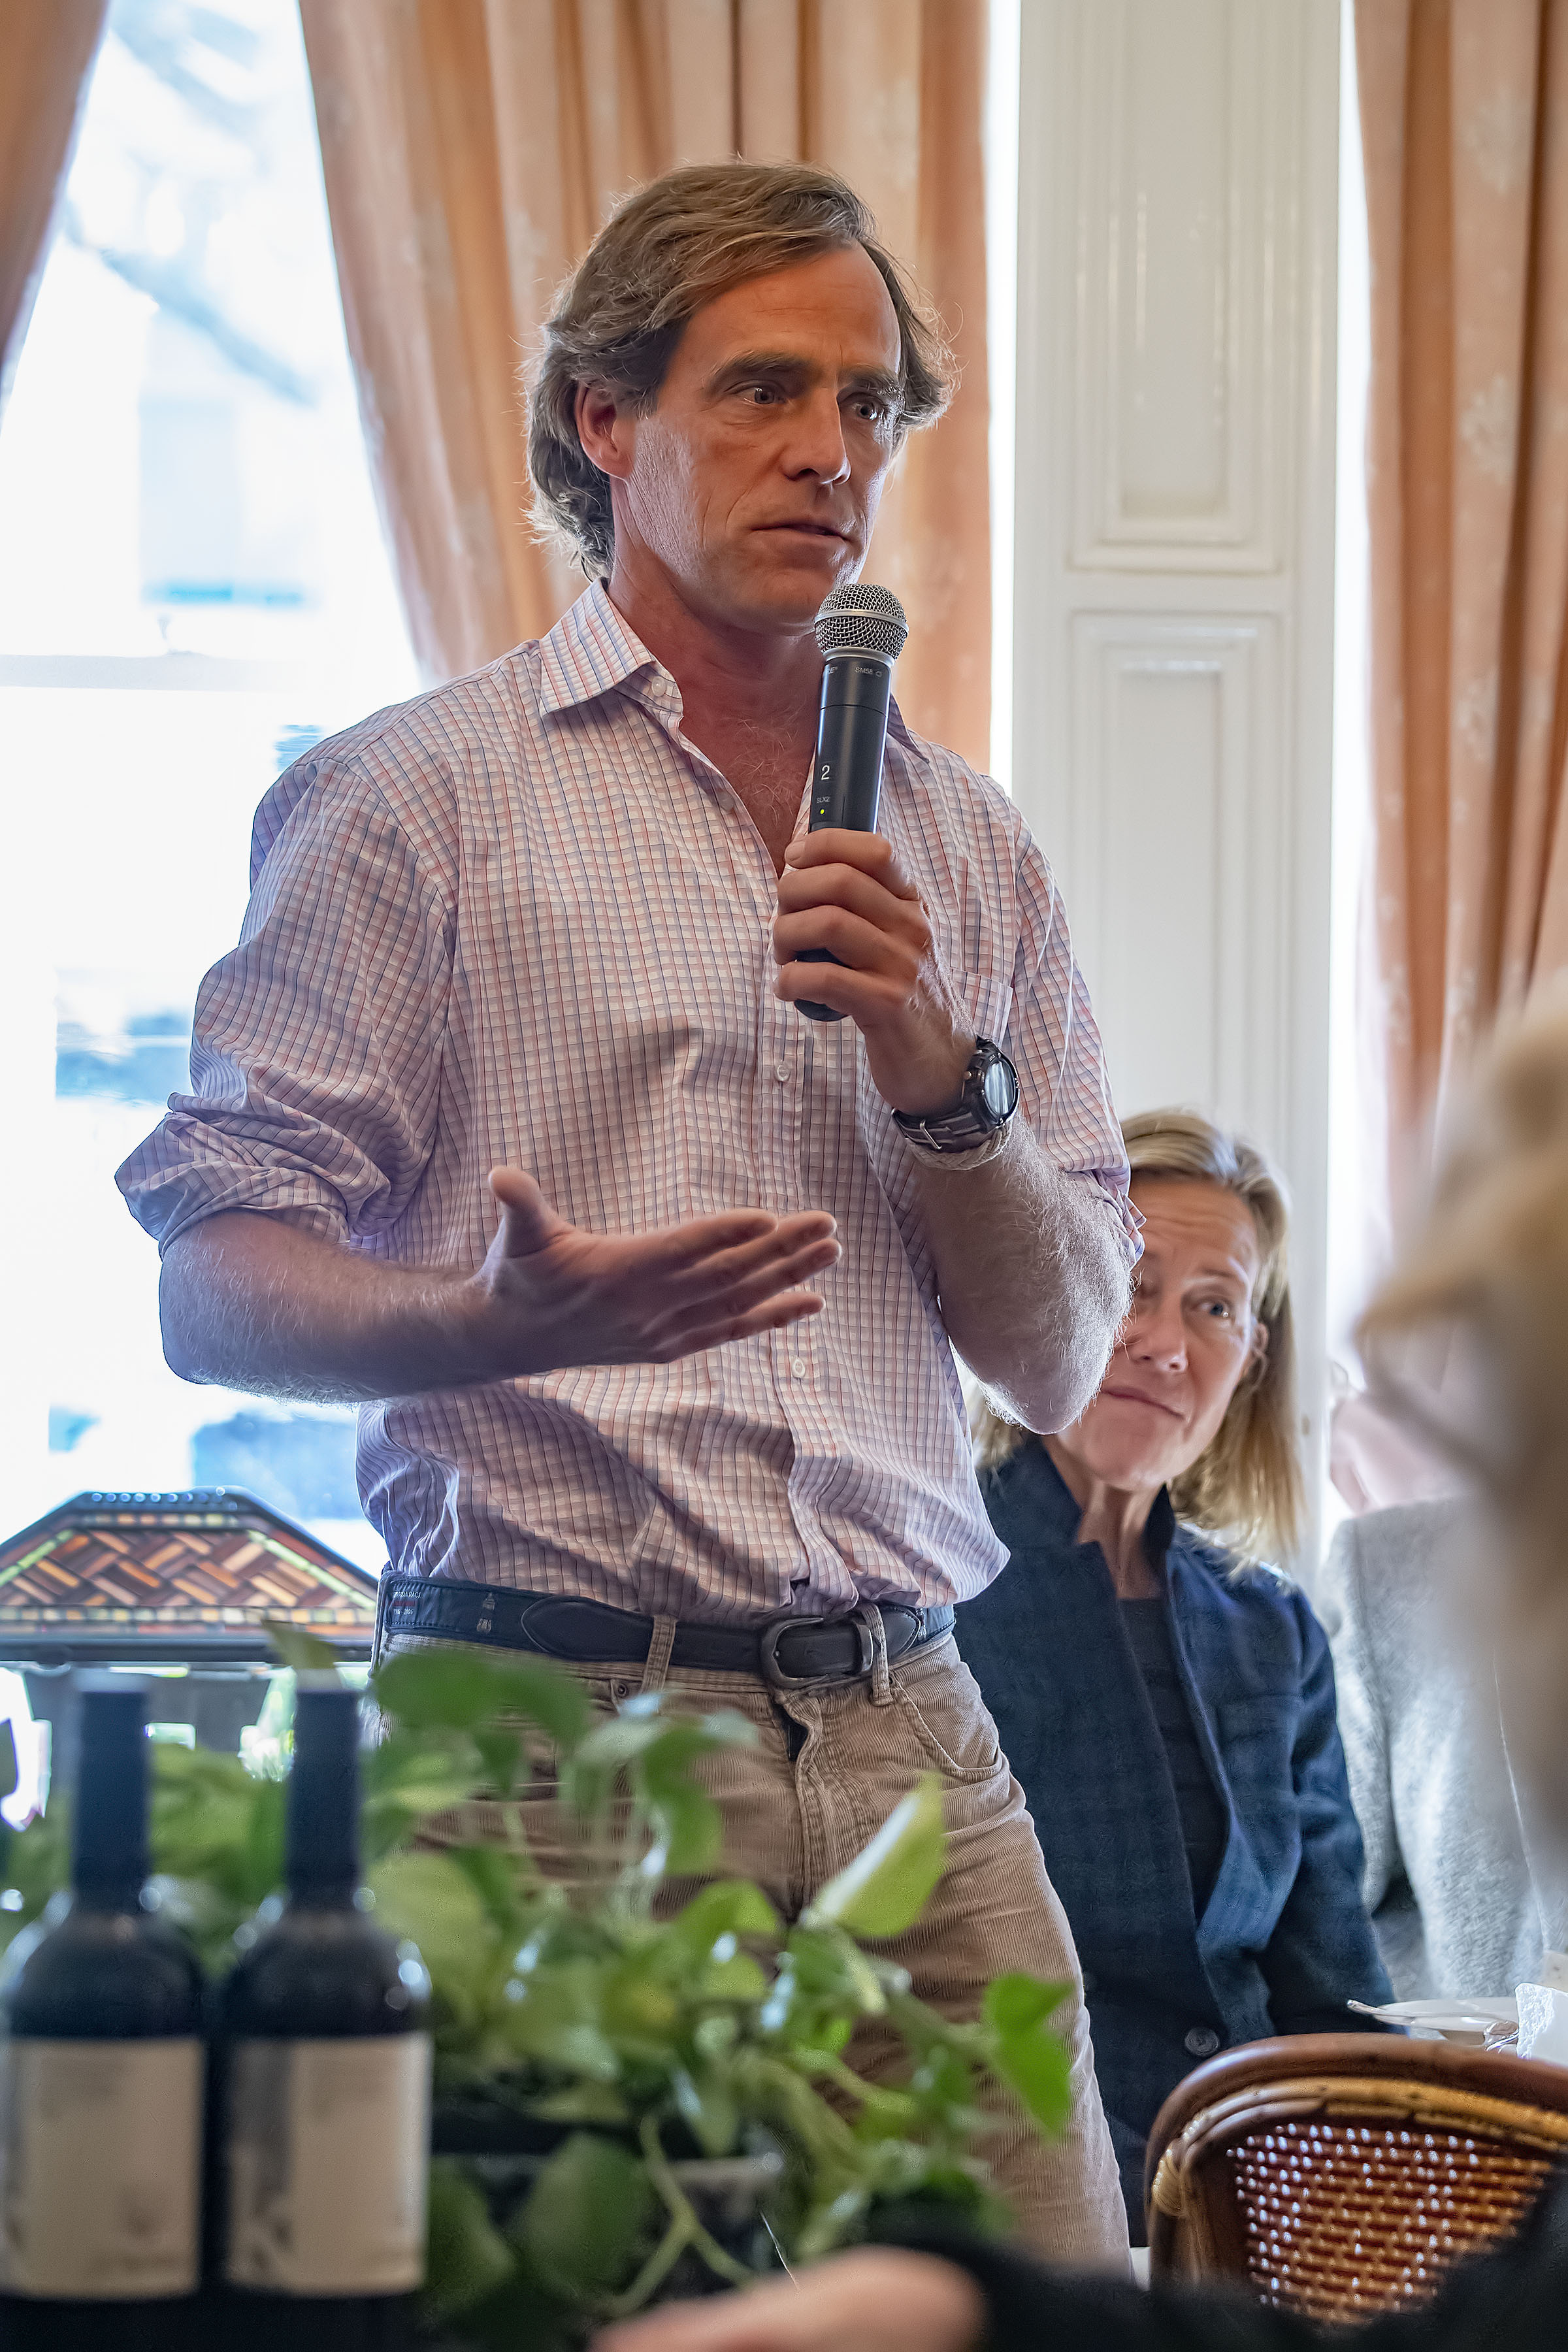 Luke Babcock poses a question to the panel during the Express Sessions - Sag Harbor Public Spaces event at the American Hotel in Sag Harbor on Friday.    MICHAEL HELLER